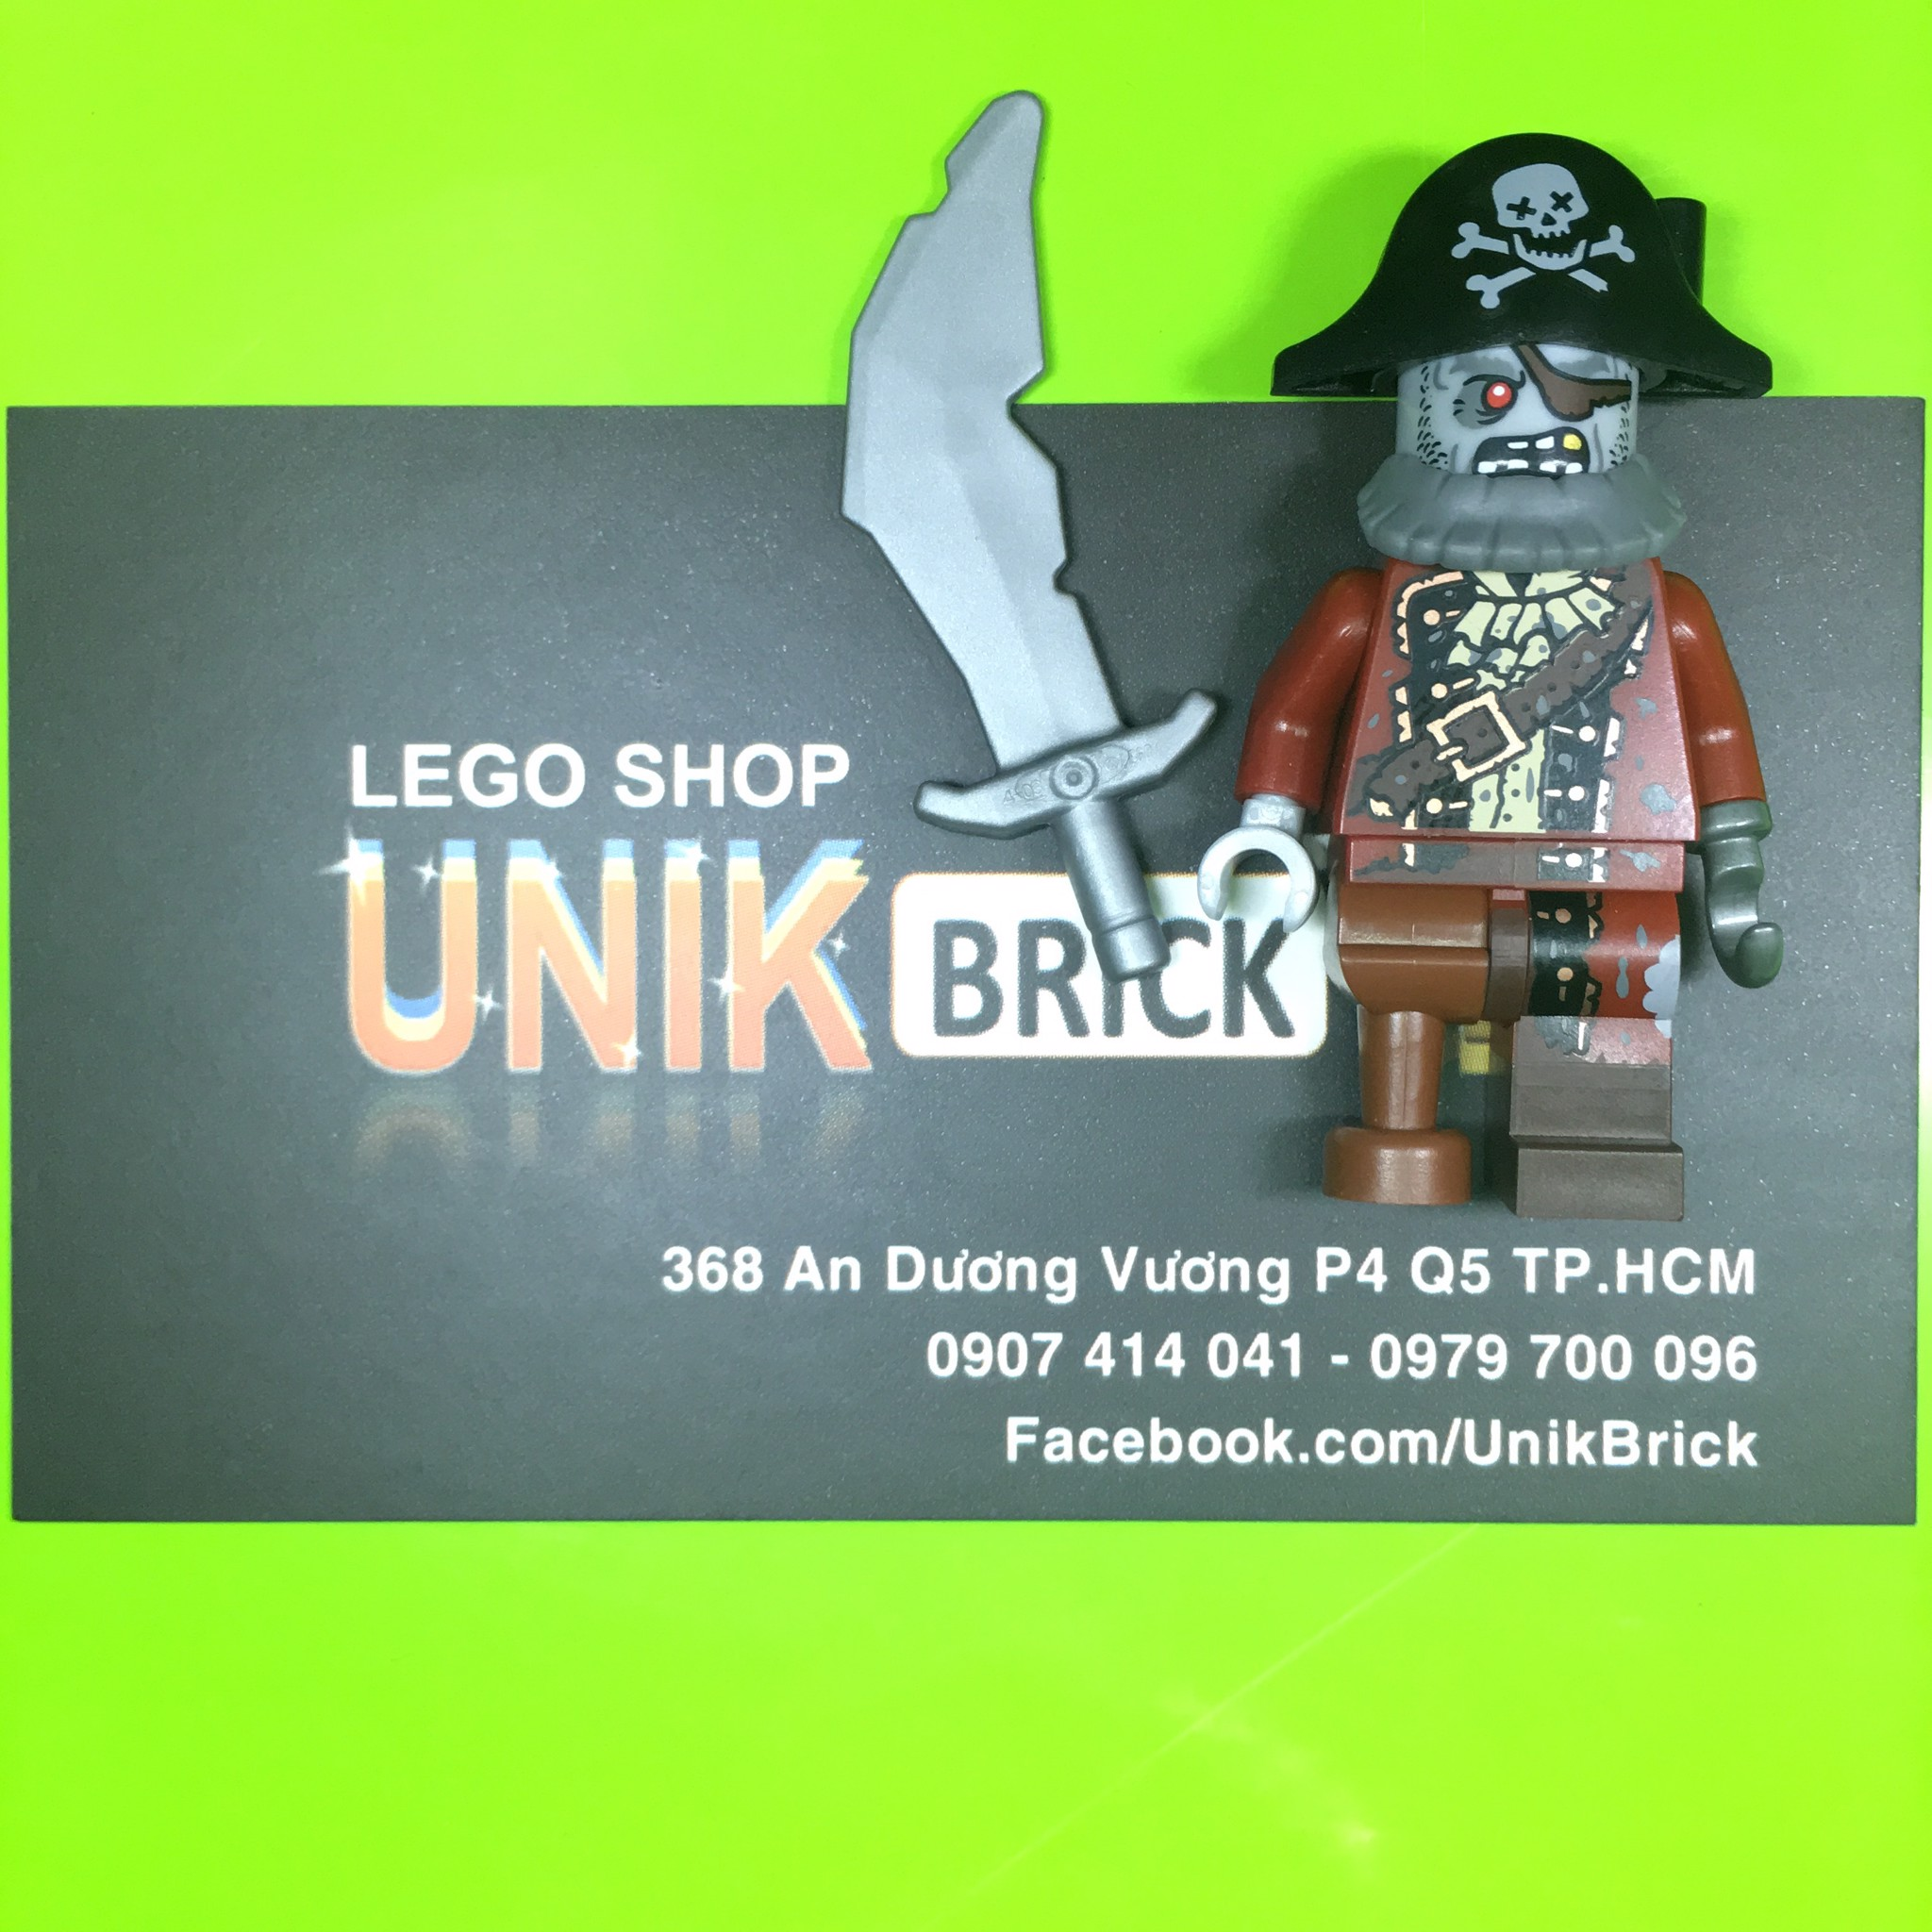 LEGO Zombie Pirate (Series 14)